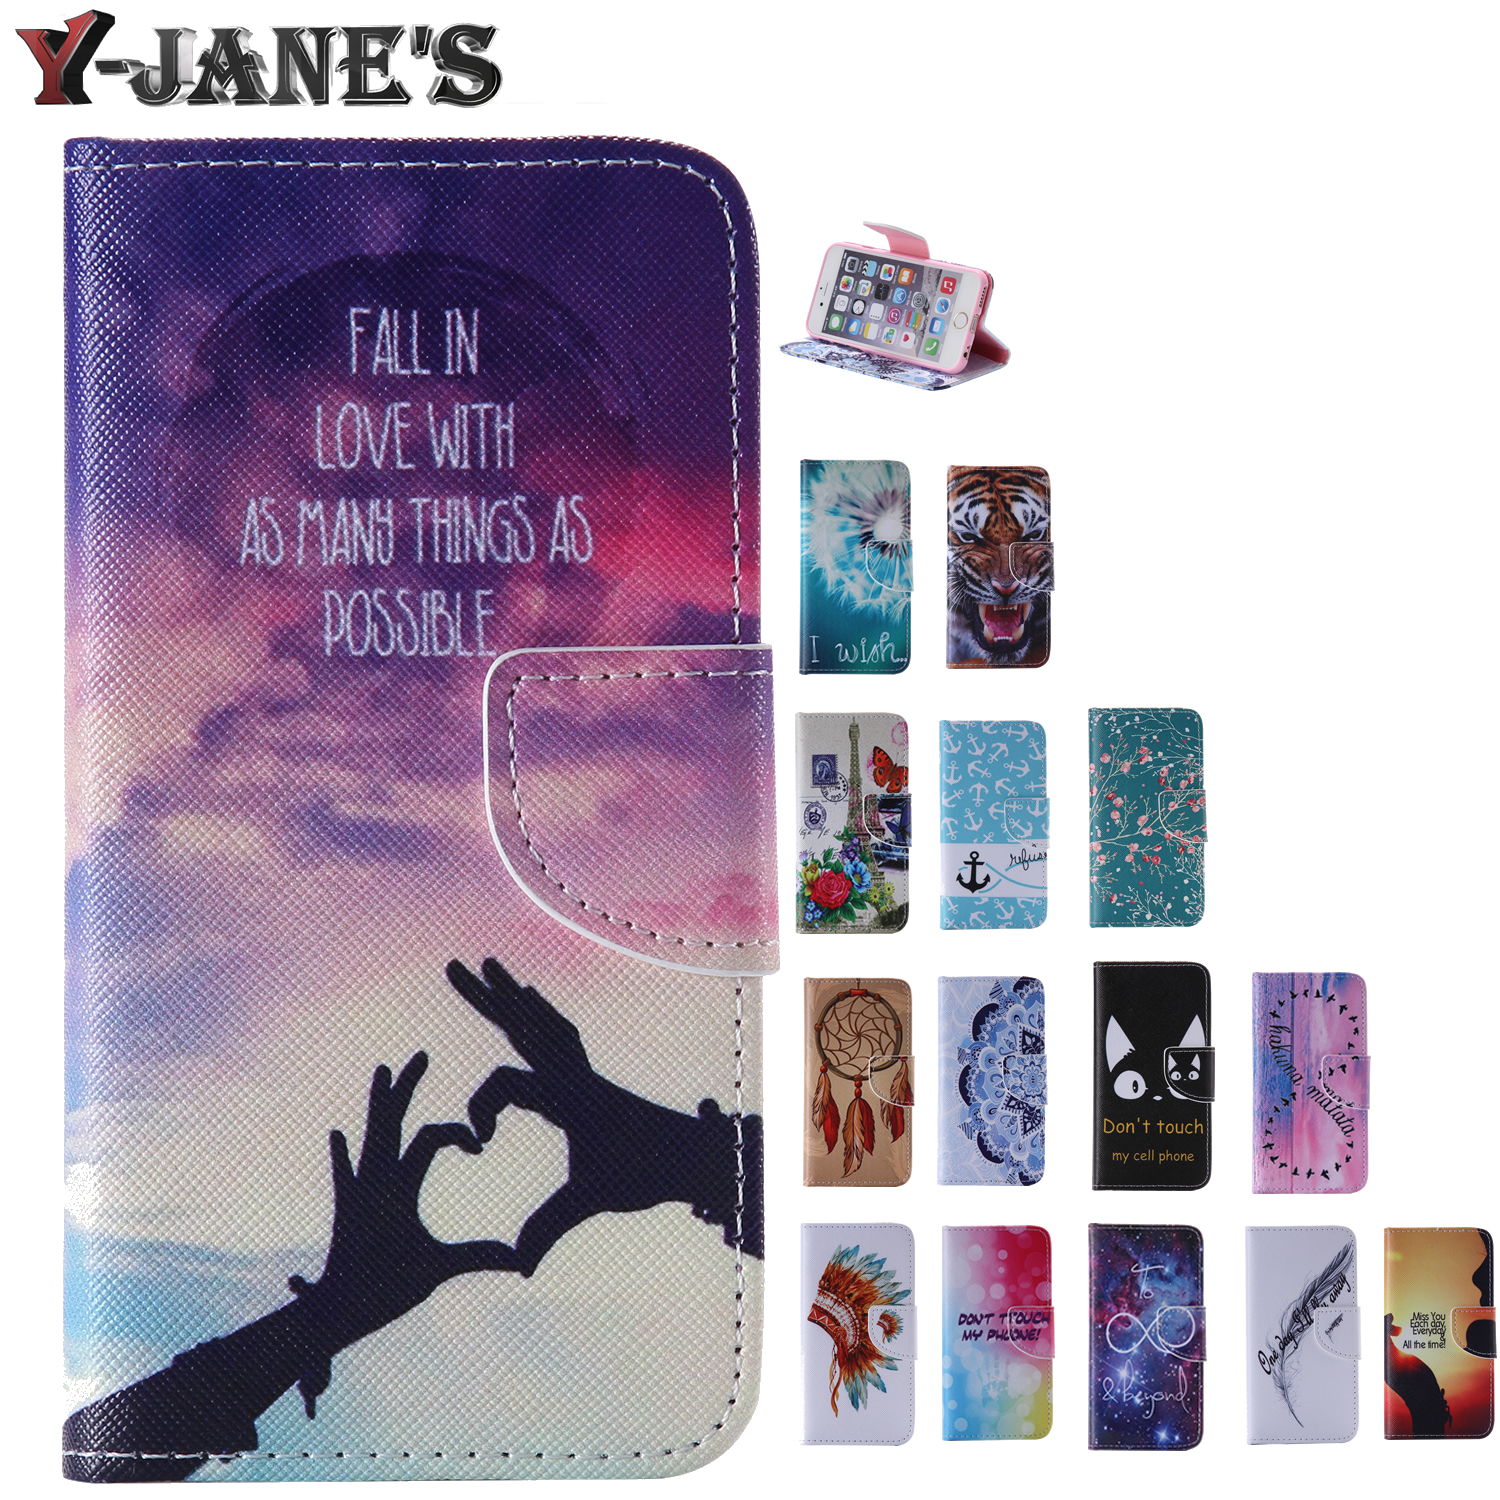 Painted Style Leather Protector TPU Cover Case Wallet Card Slots Phone Case Samsung Galaxy S4 Mini i9190 Cases